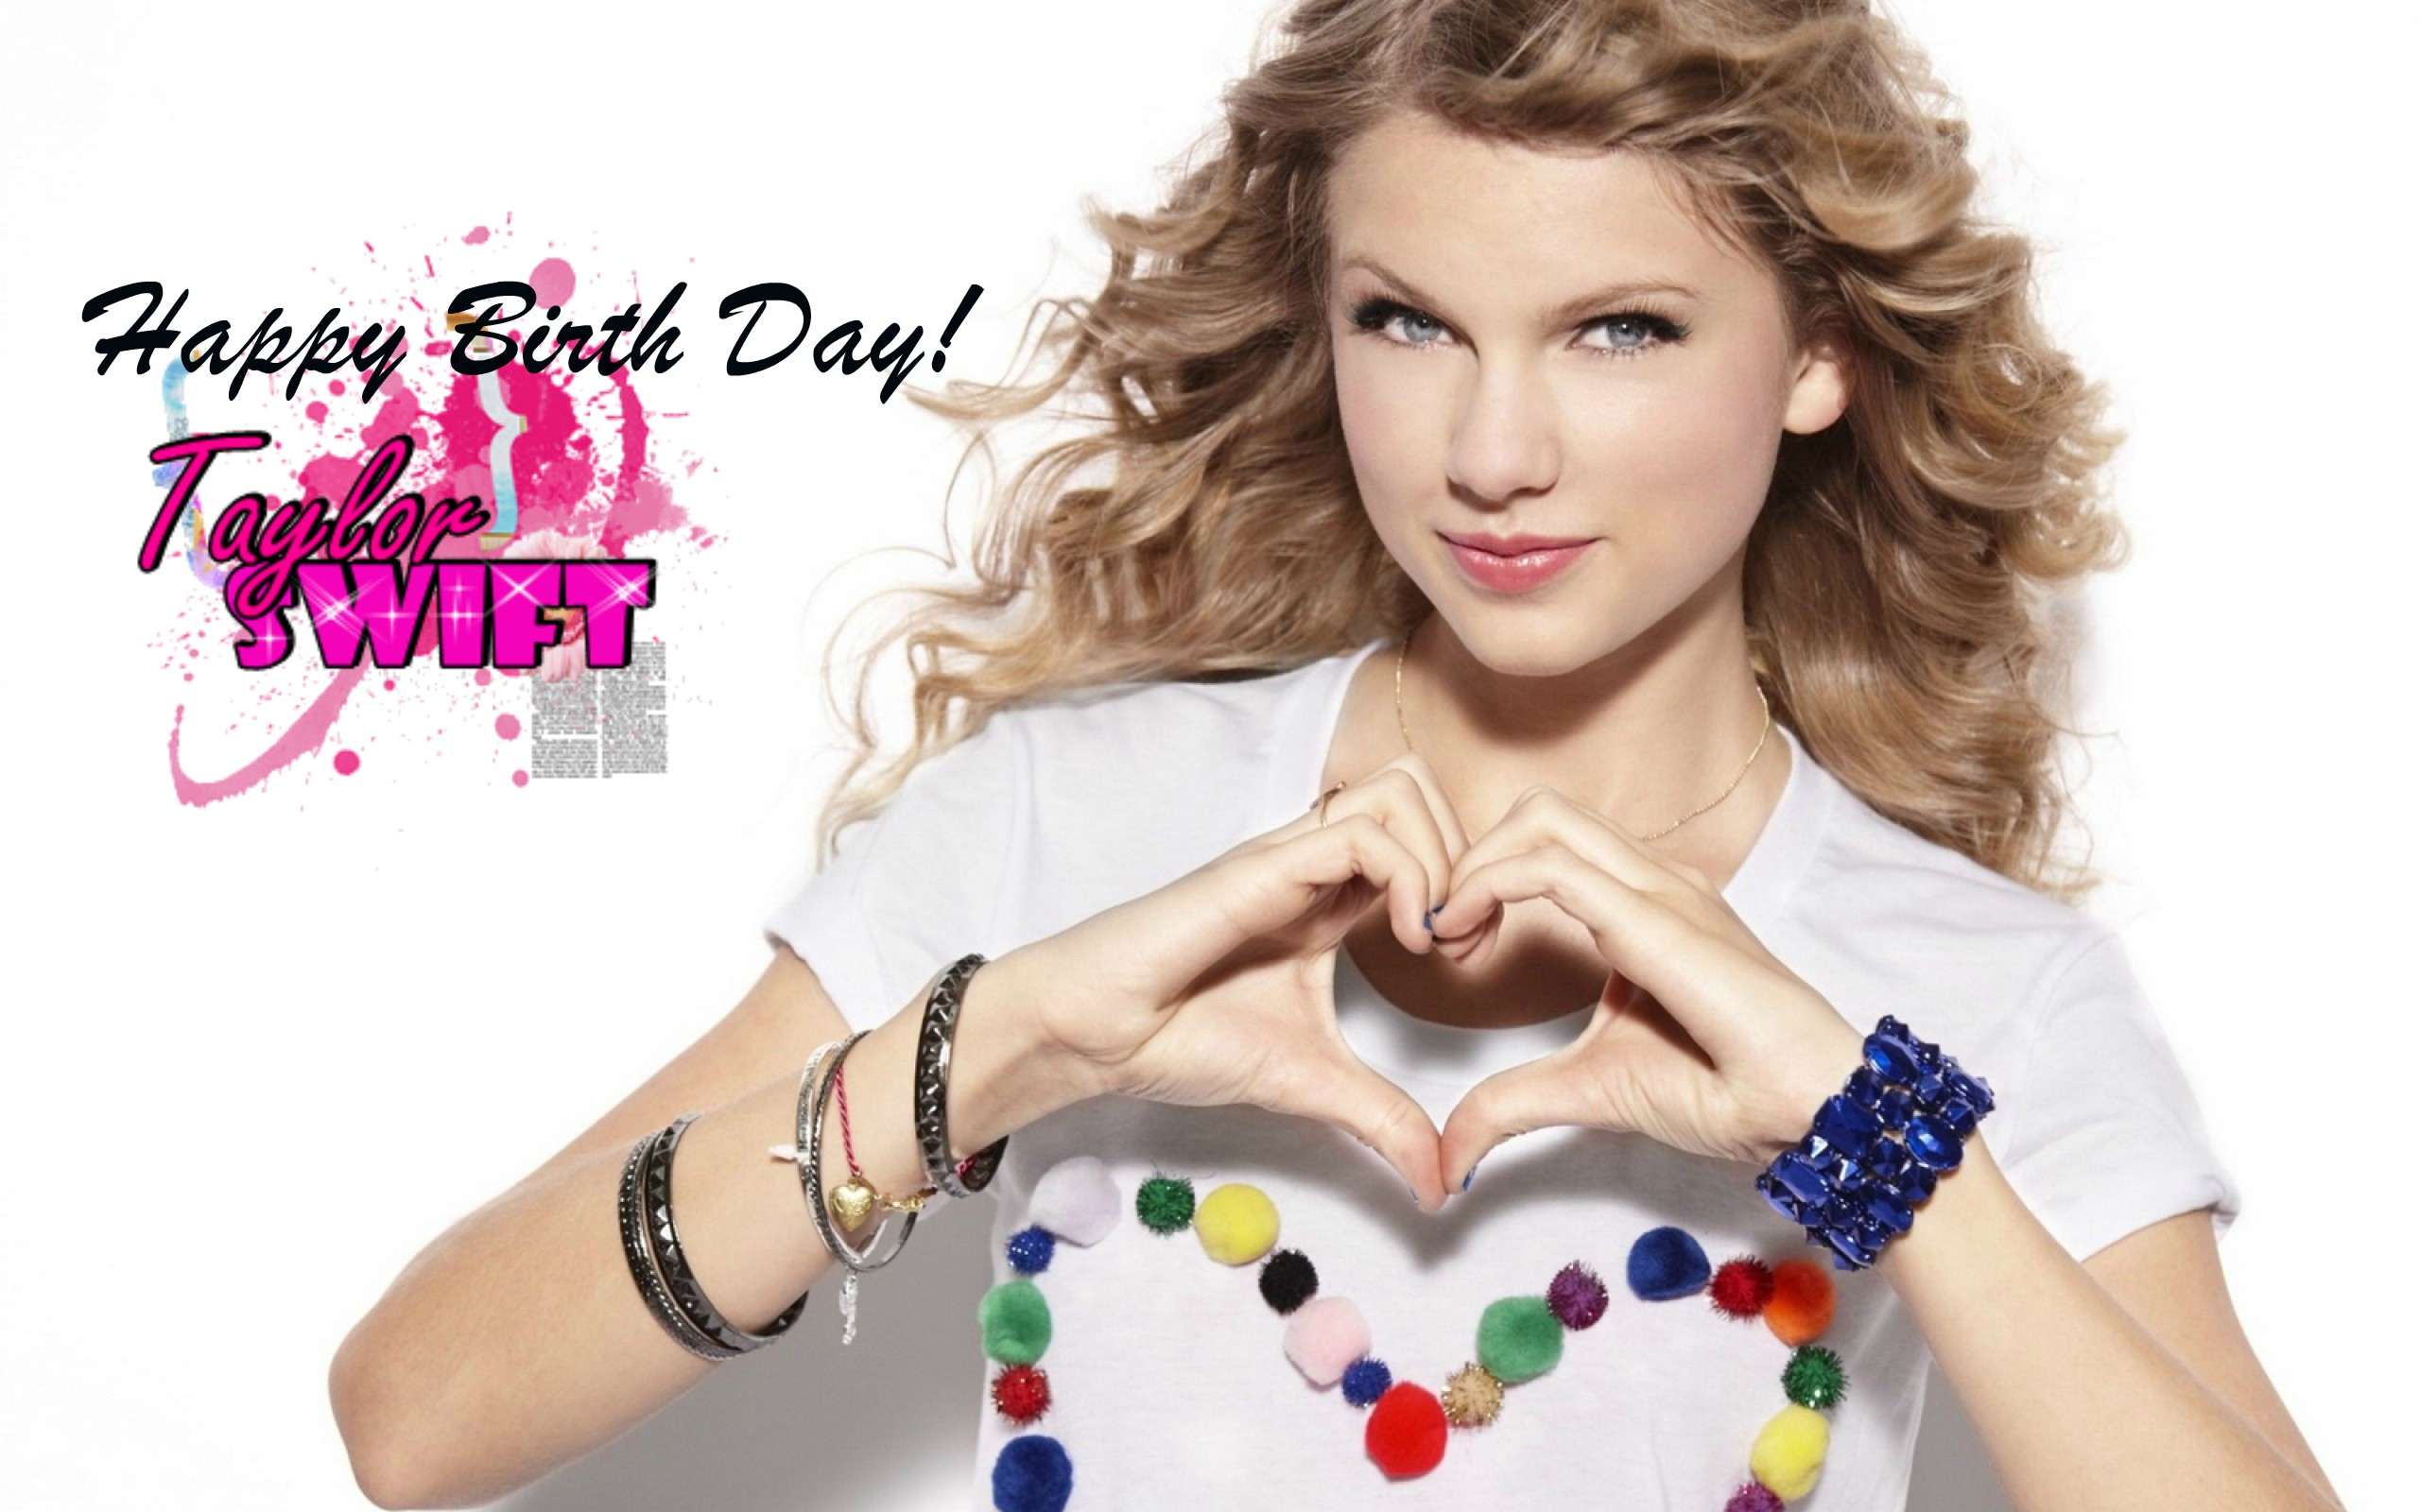 Happy 26th Birthday Taylor Taylor Rapide Rapide Swift Fond D Ecran 39129456 Fanpop